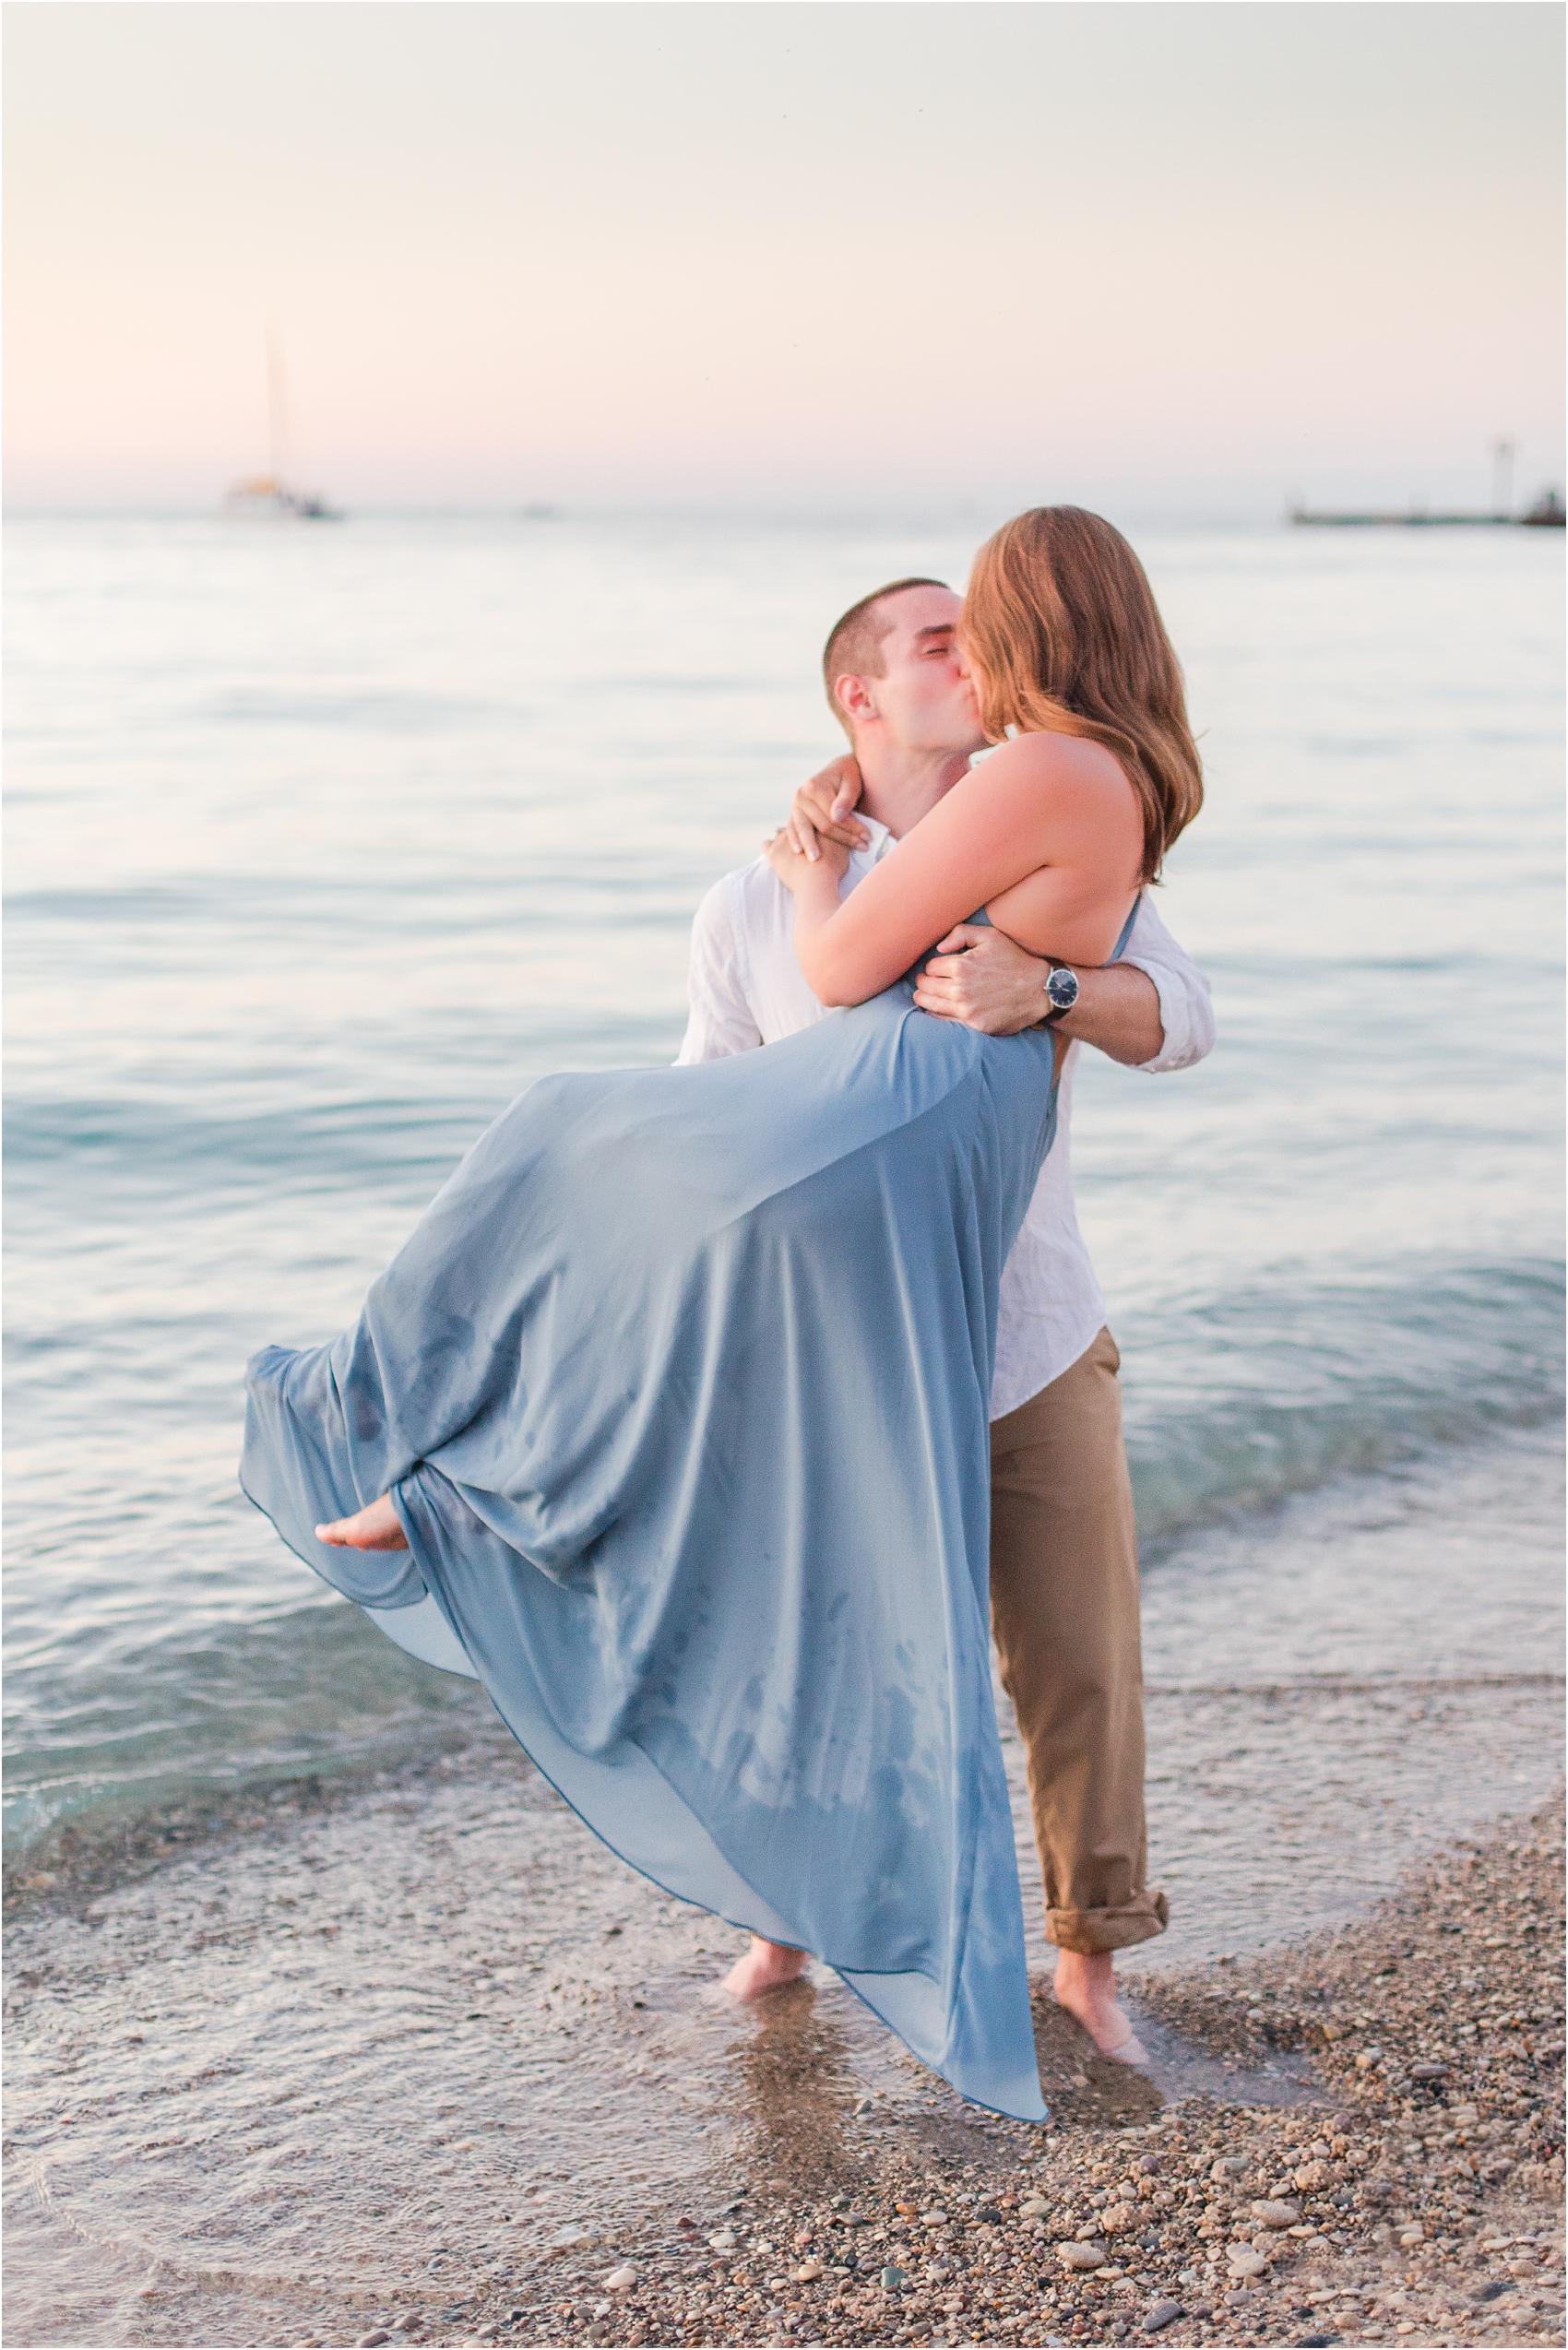 emotional-candid-romantic-engagement-photos-in-detroit-chicago-northern-michigan-by-courtney-carolyn-photography_0052.jpg